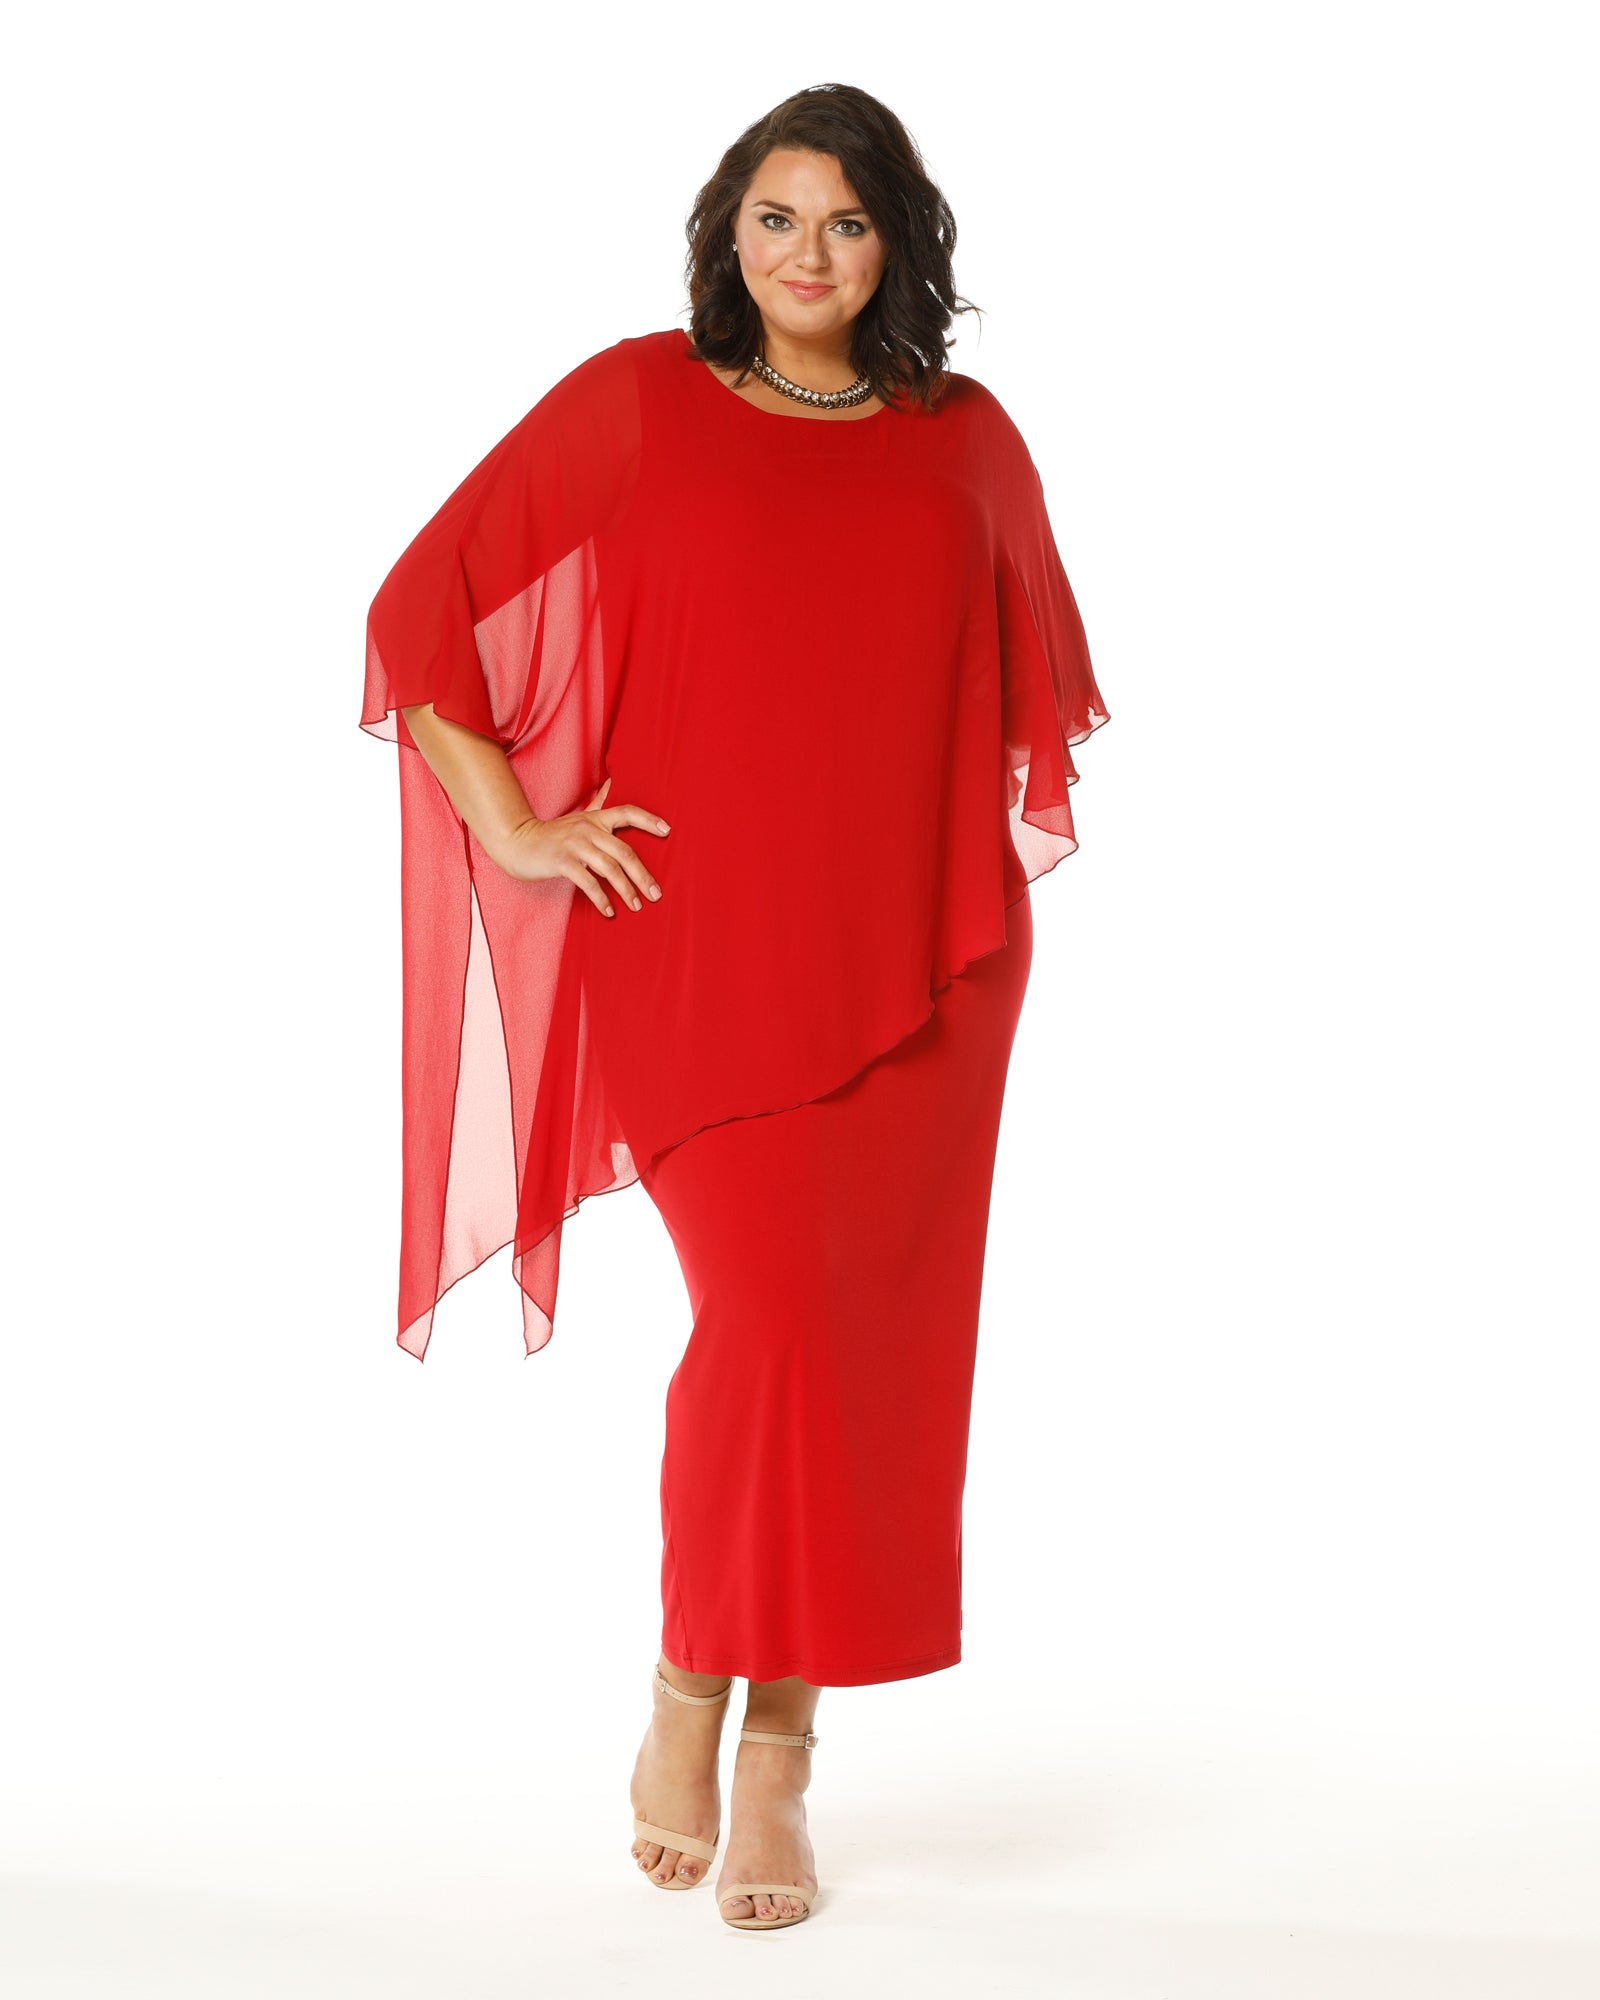 Plus Size Clothing Sizes 12 26 Free Au Delivery Over 100 Free